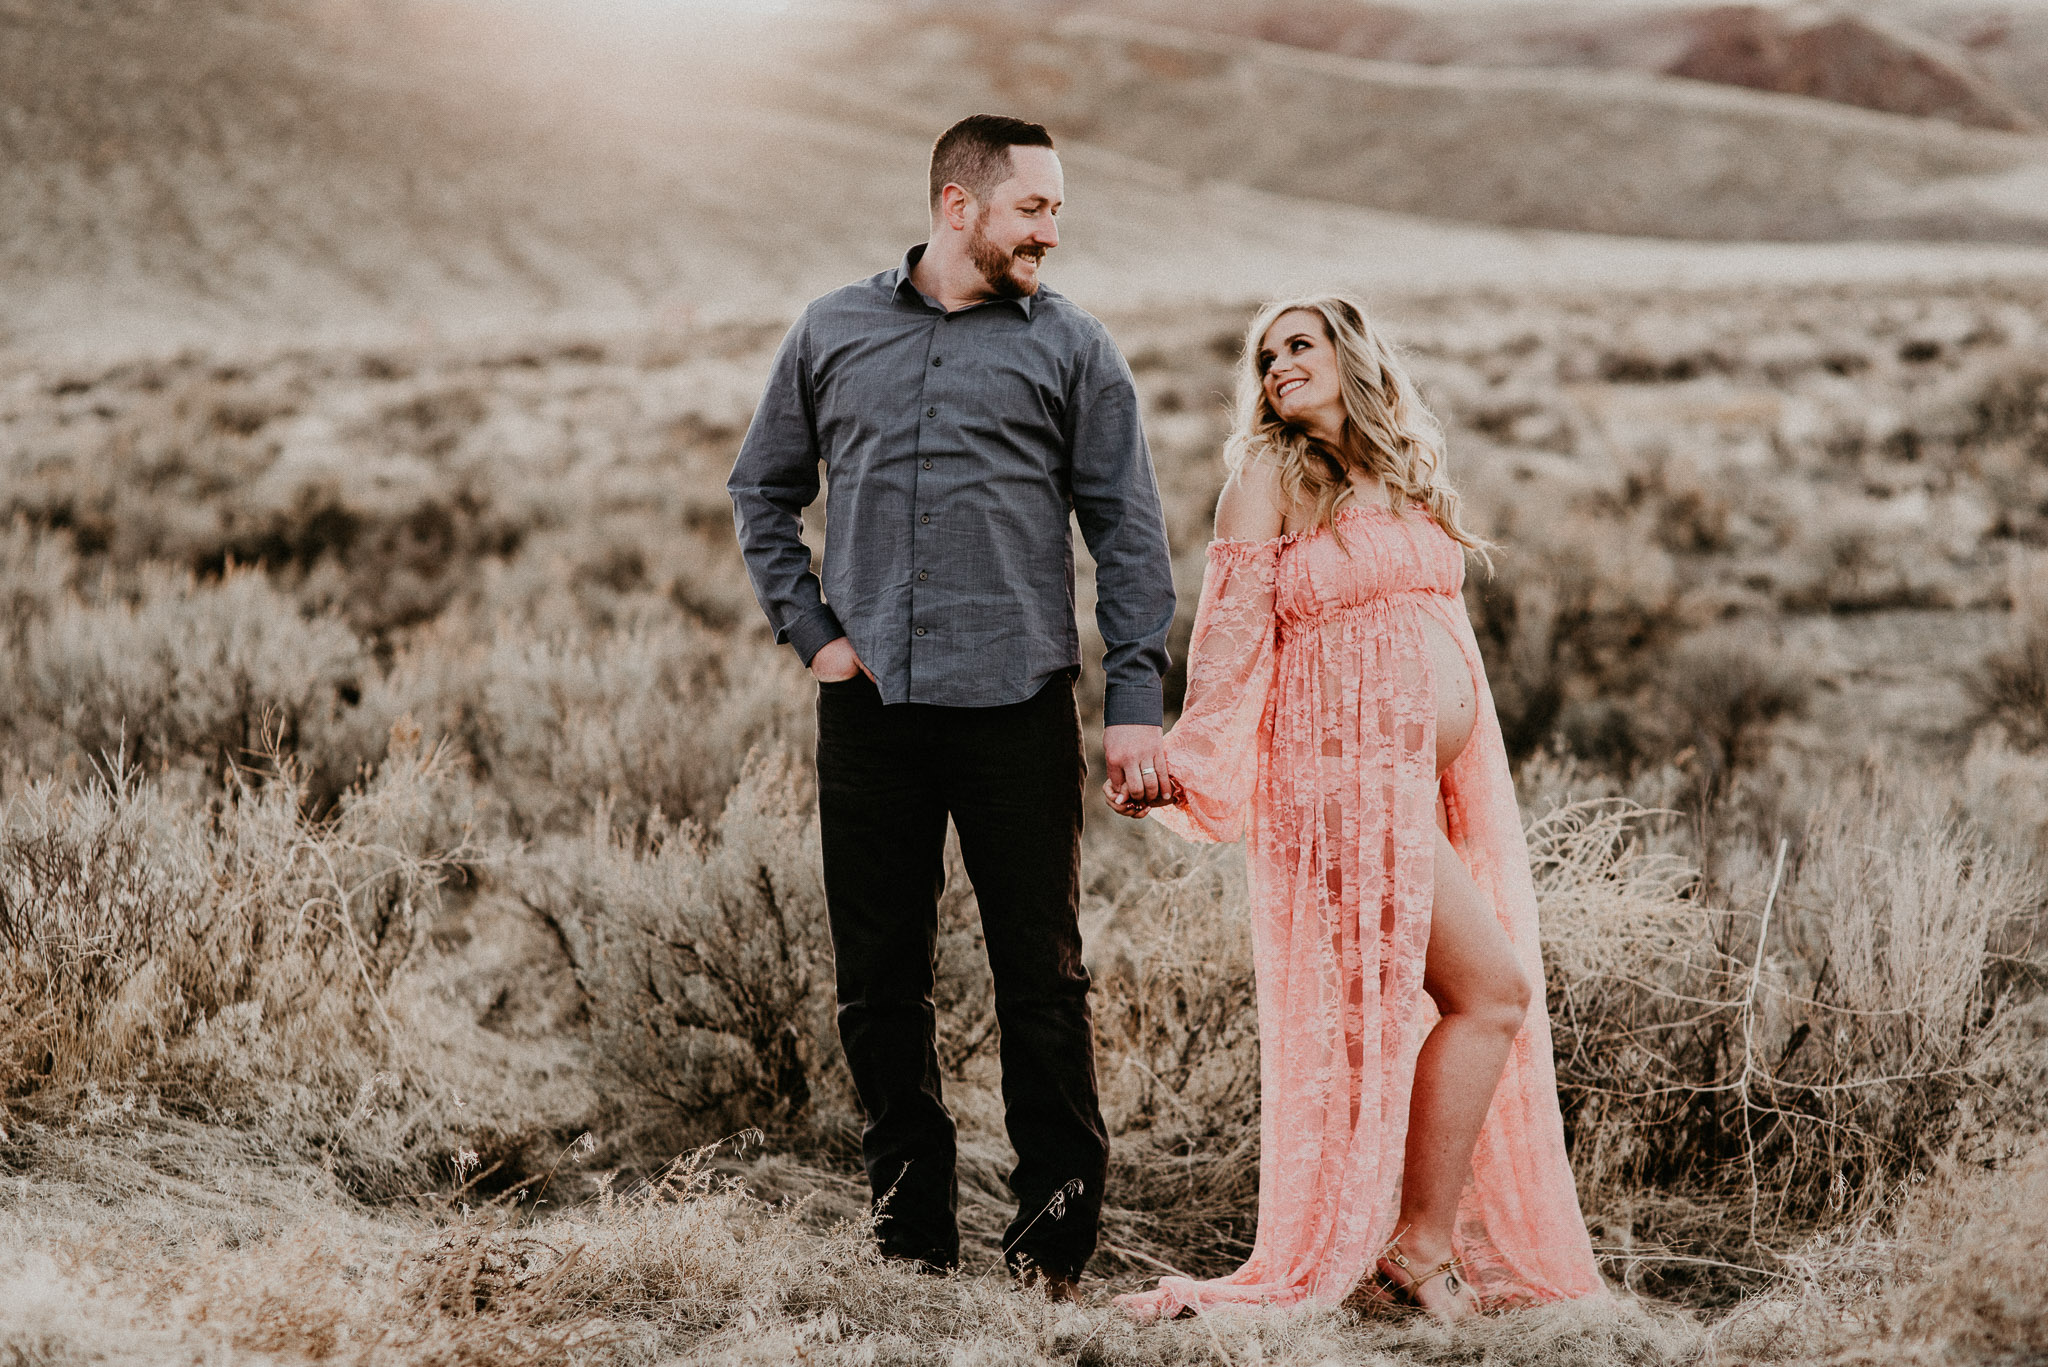 Boise Maternity Senior Boudoir Photographer Makayla Madden Photography Maternity dress motherhood expecting Idaho Blush Pink Sew Trendy Accessories Lace Gown Boise Maternity Pictures